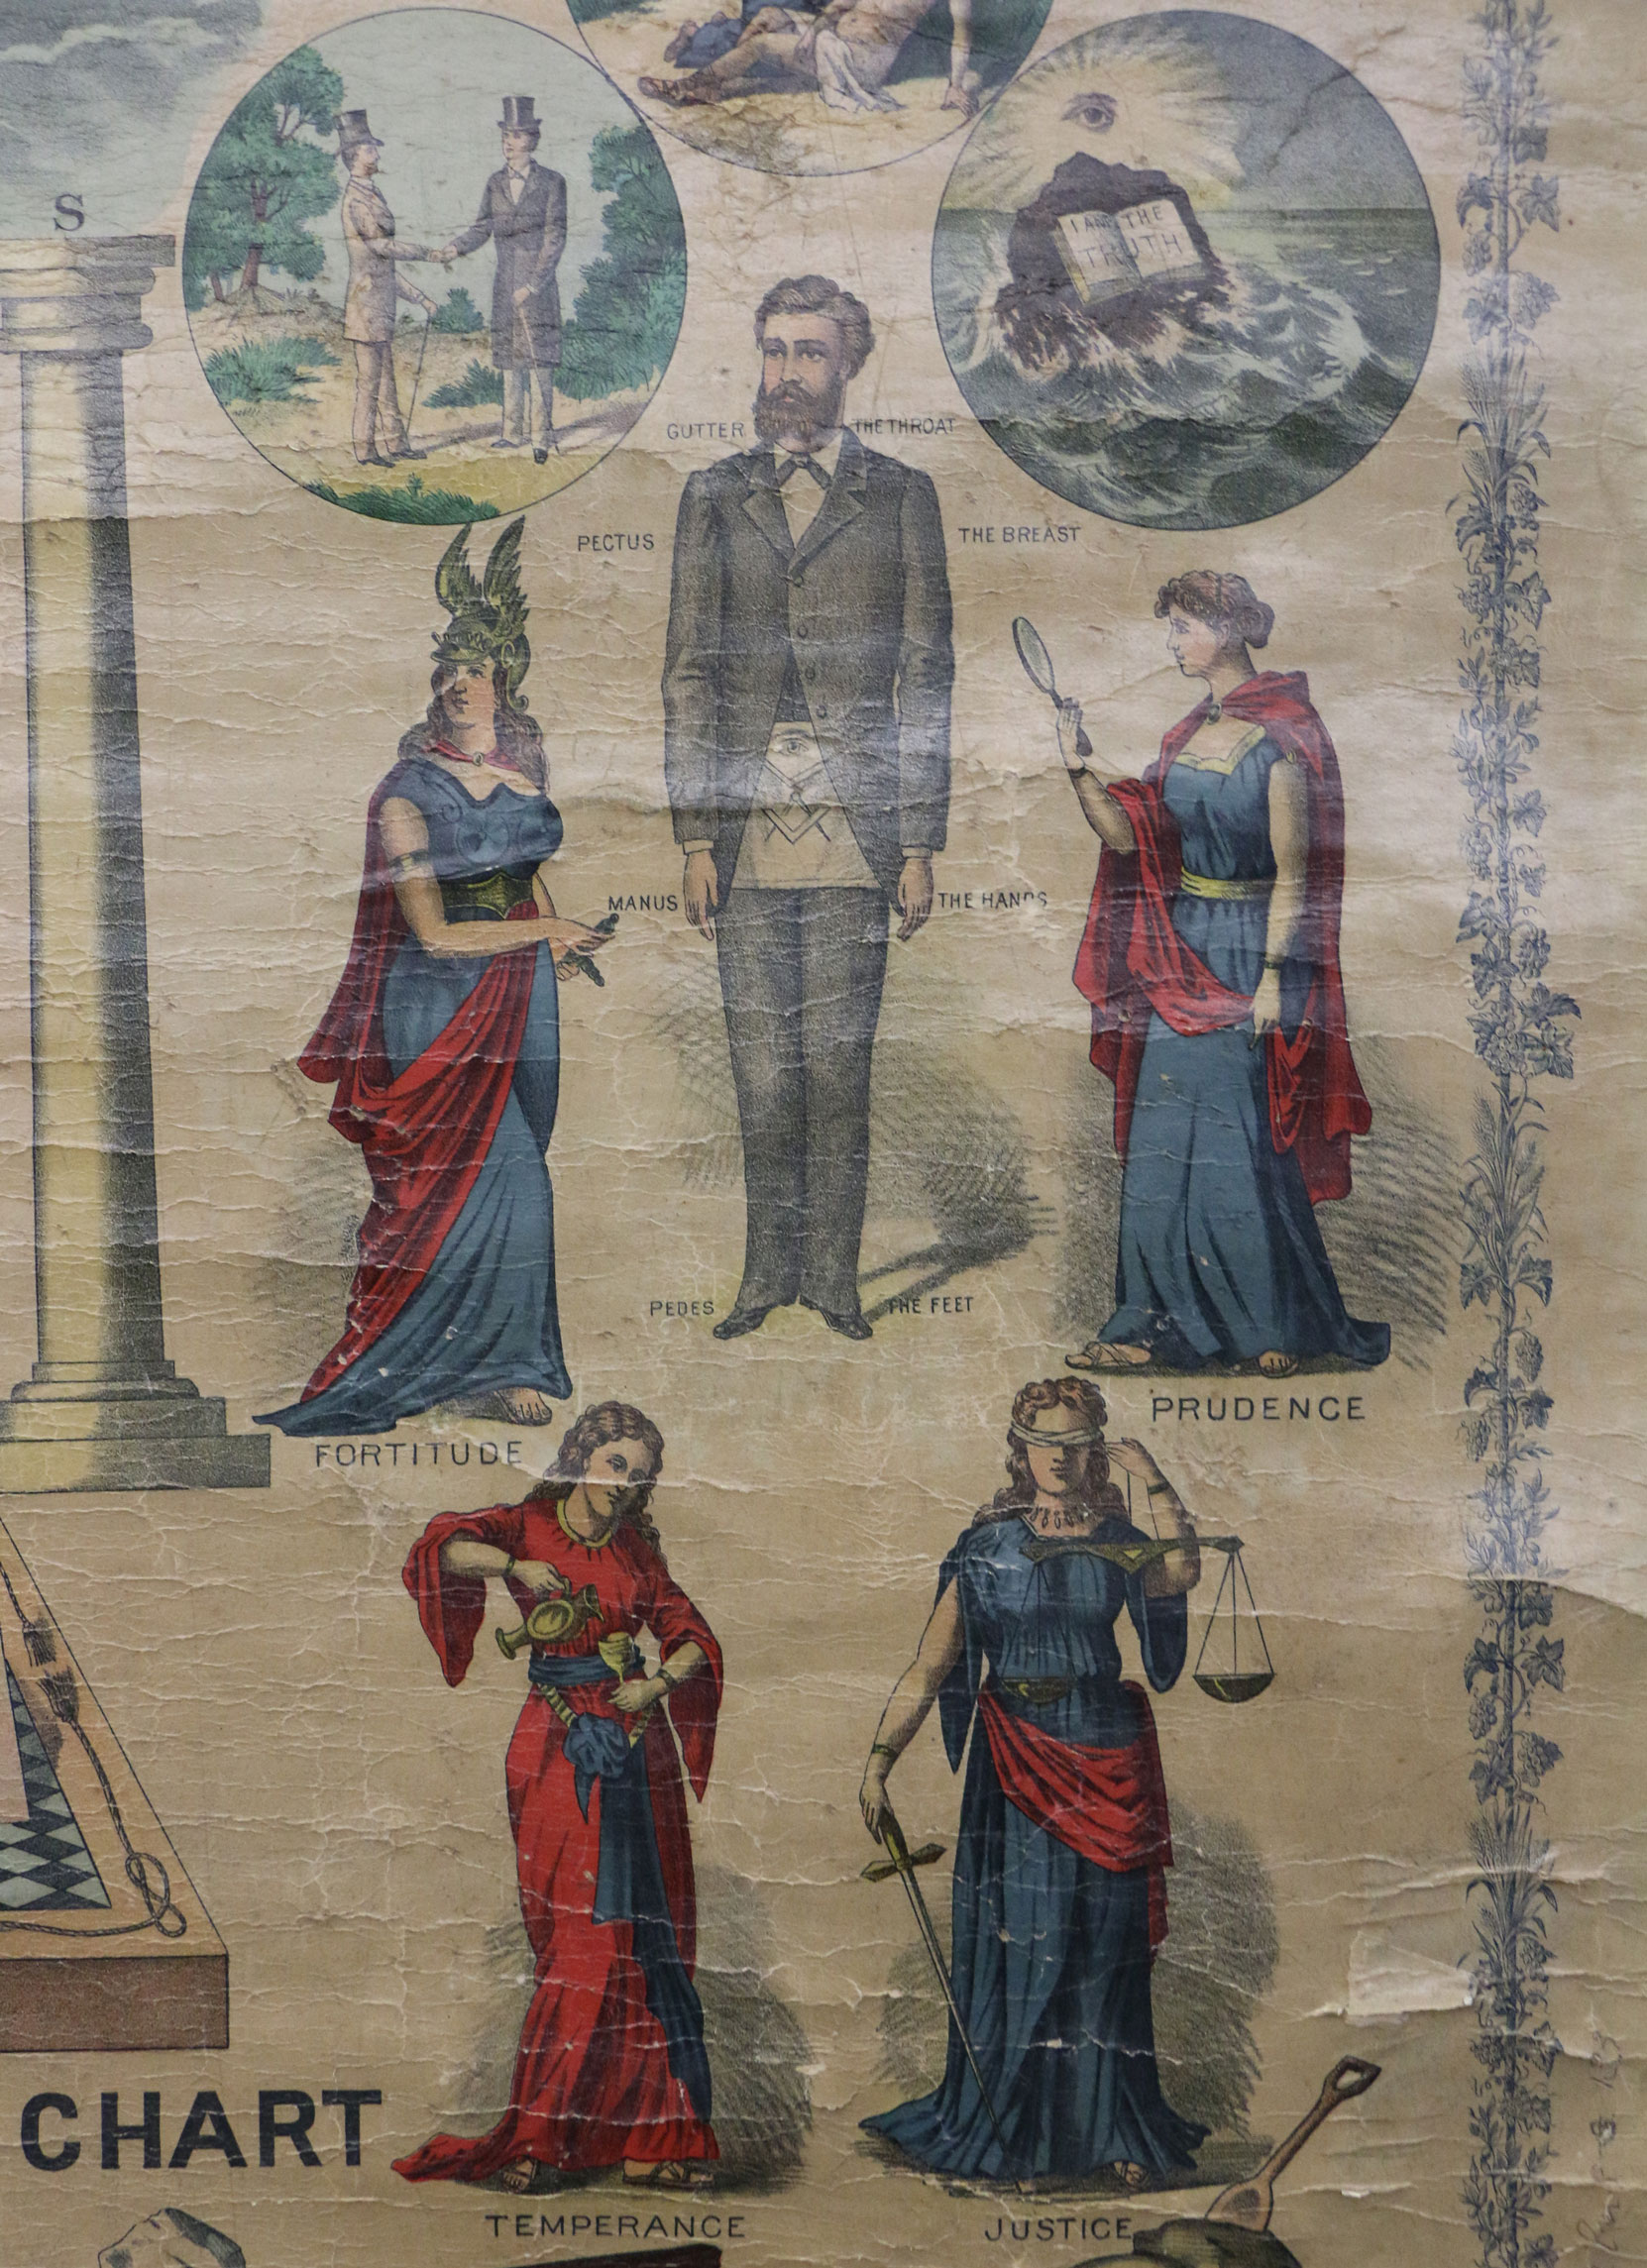 Four Cardinal Virtues - Prudence, Temperance, Fortitude and Justice - from a Masonic Lecture Chart, circa 1890 (photo by Temple Lodge No. 33 Historian)